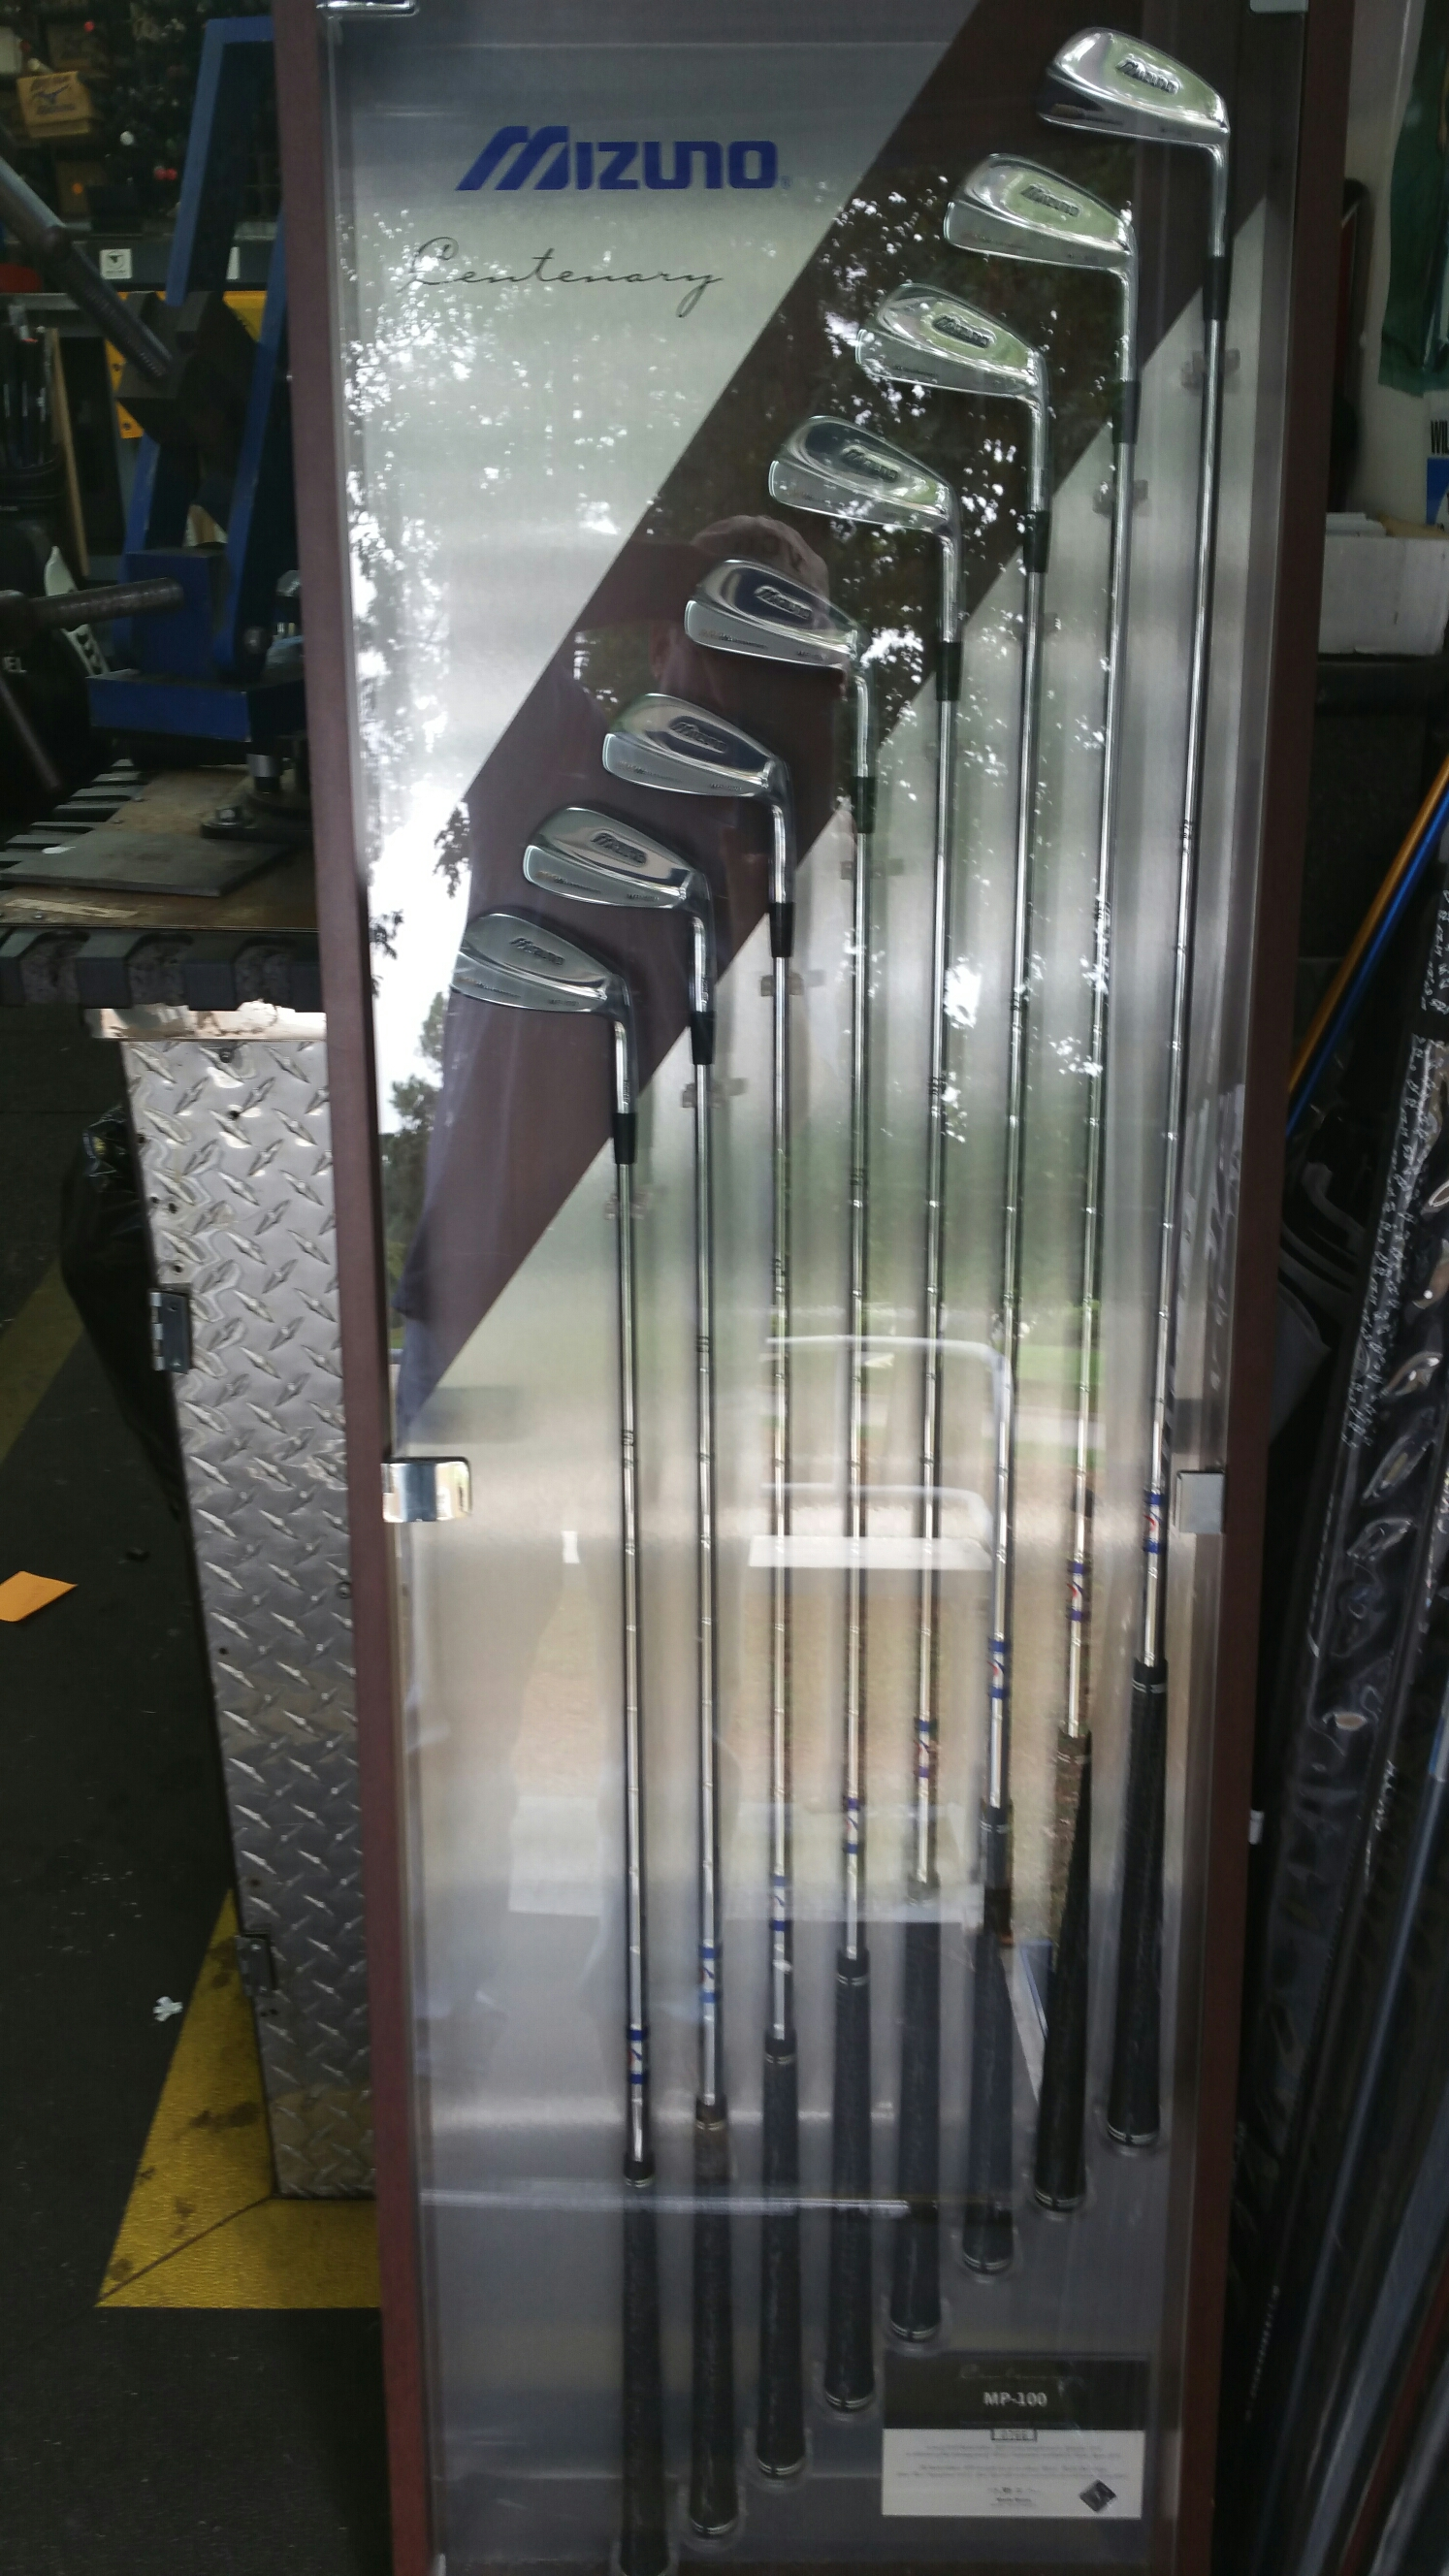 LIMITED EDITION MIZUNO MP 100 IRON SET AVAILABLE